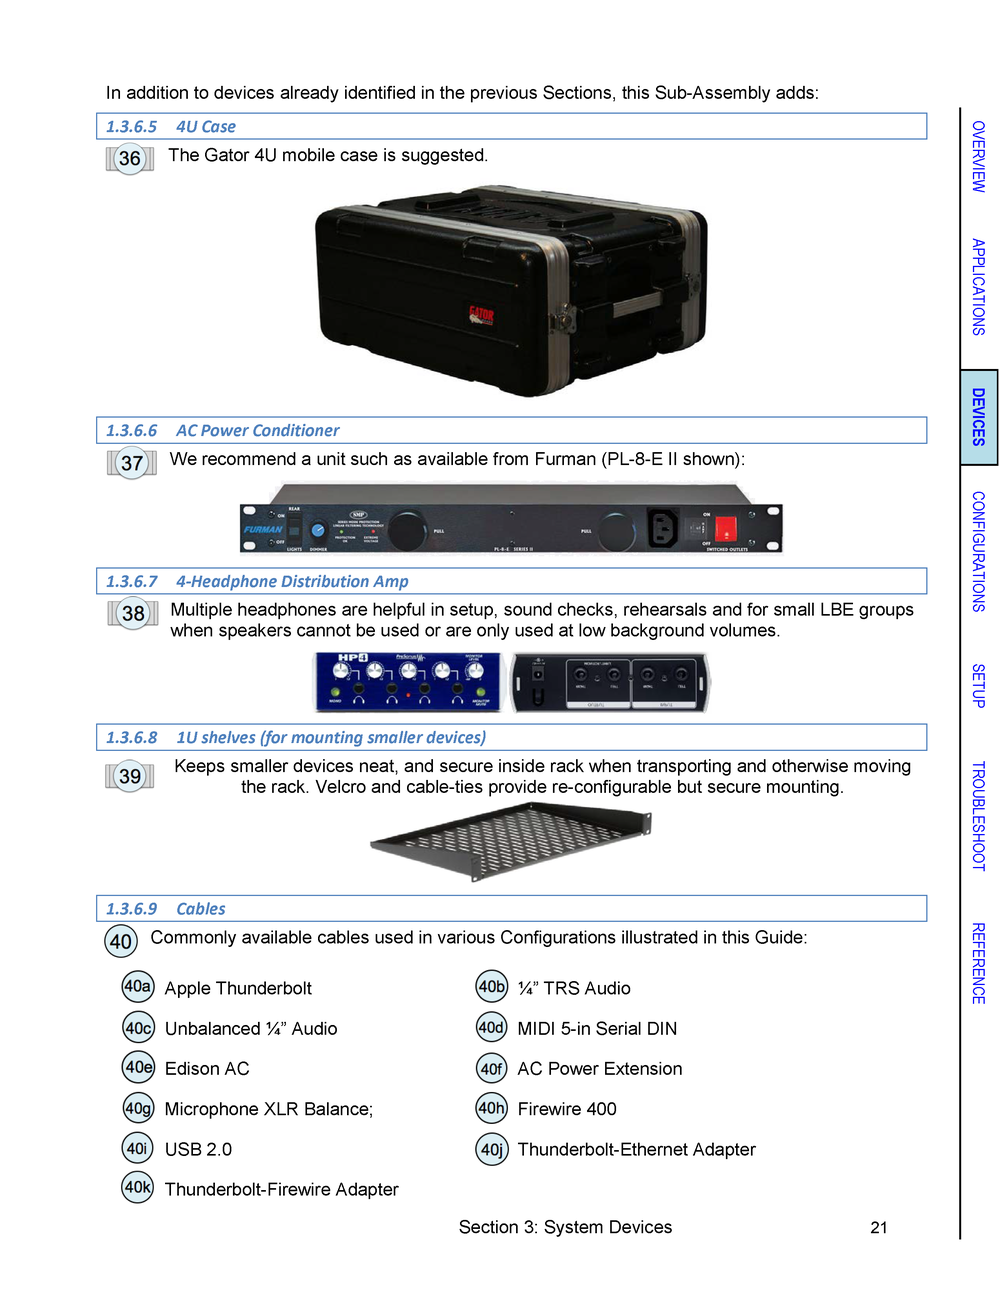 SpaceHarp_Systems_User_Guide_Oct-9th-2017_released_Page_21.png